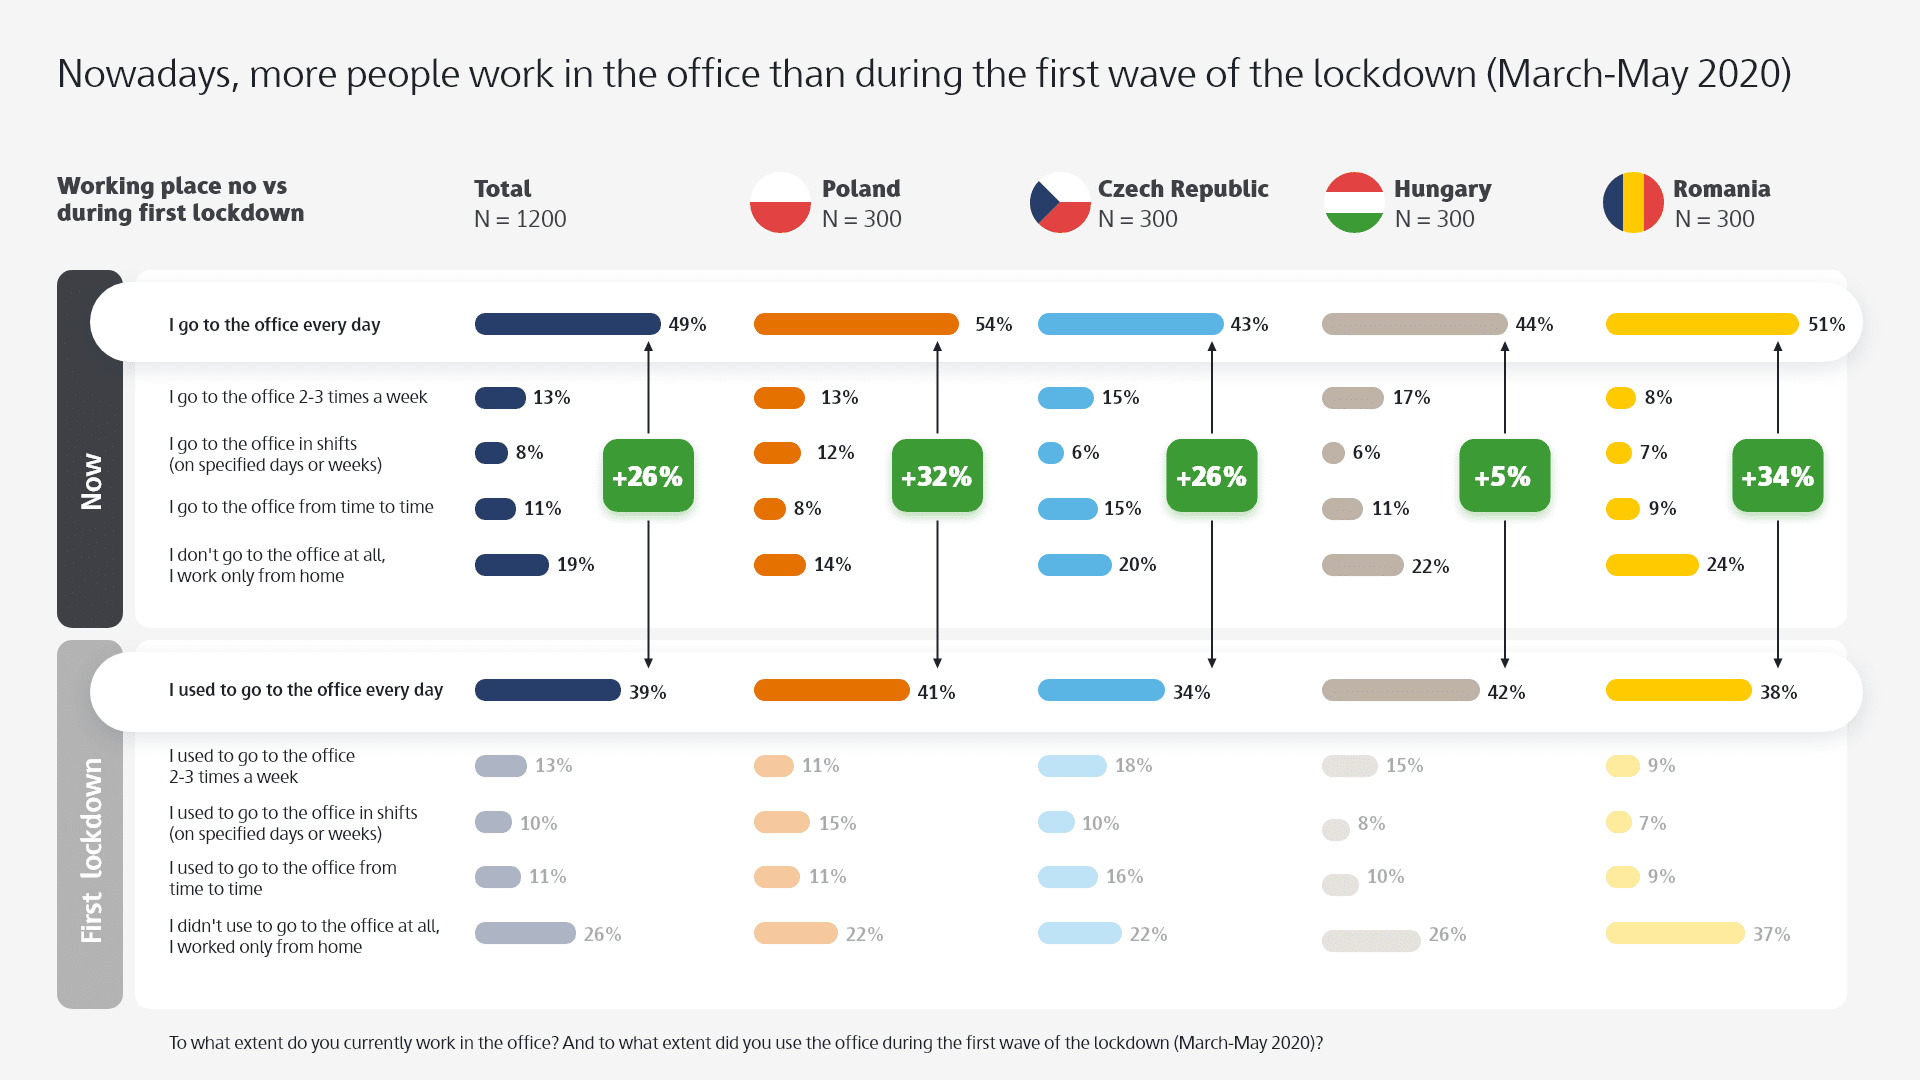 Nowadays, more people work in the office than during the first wave of the lockdown